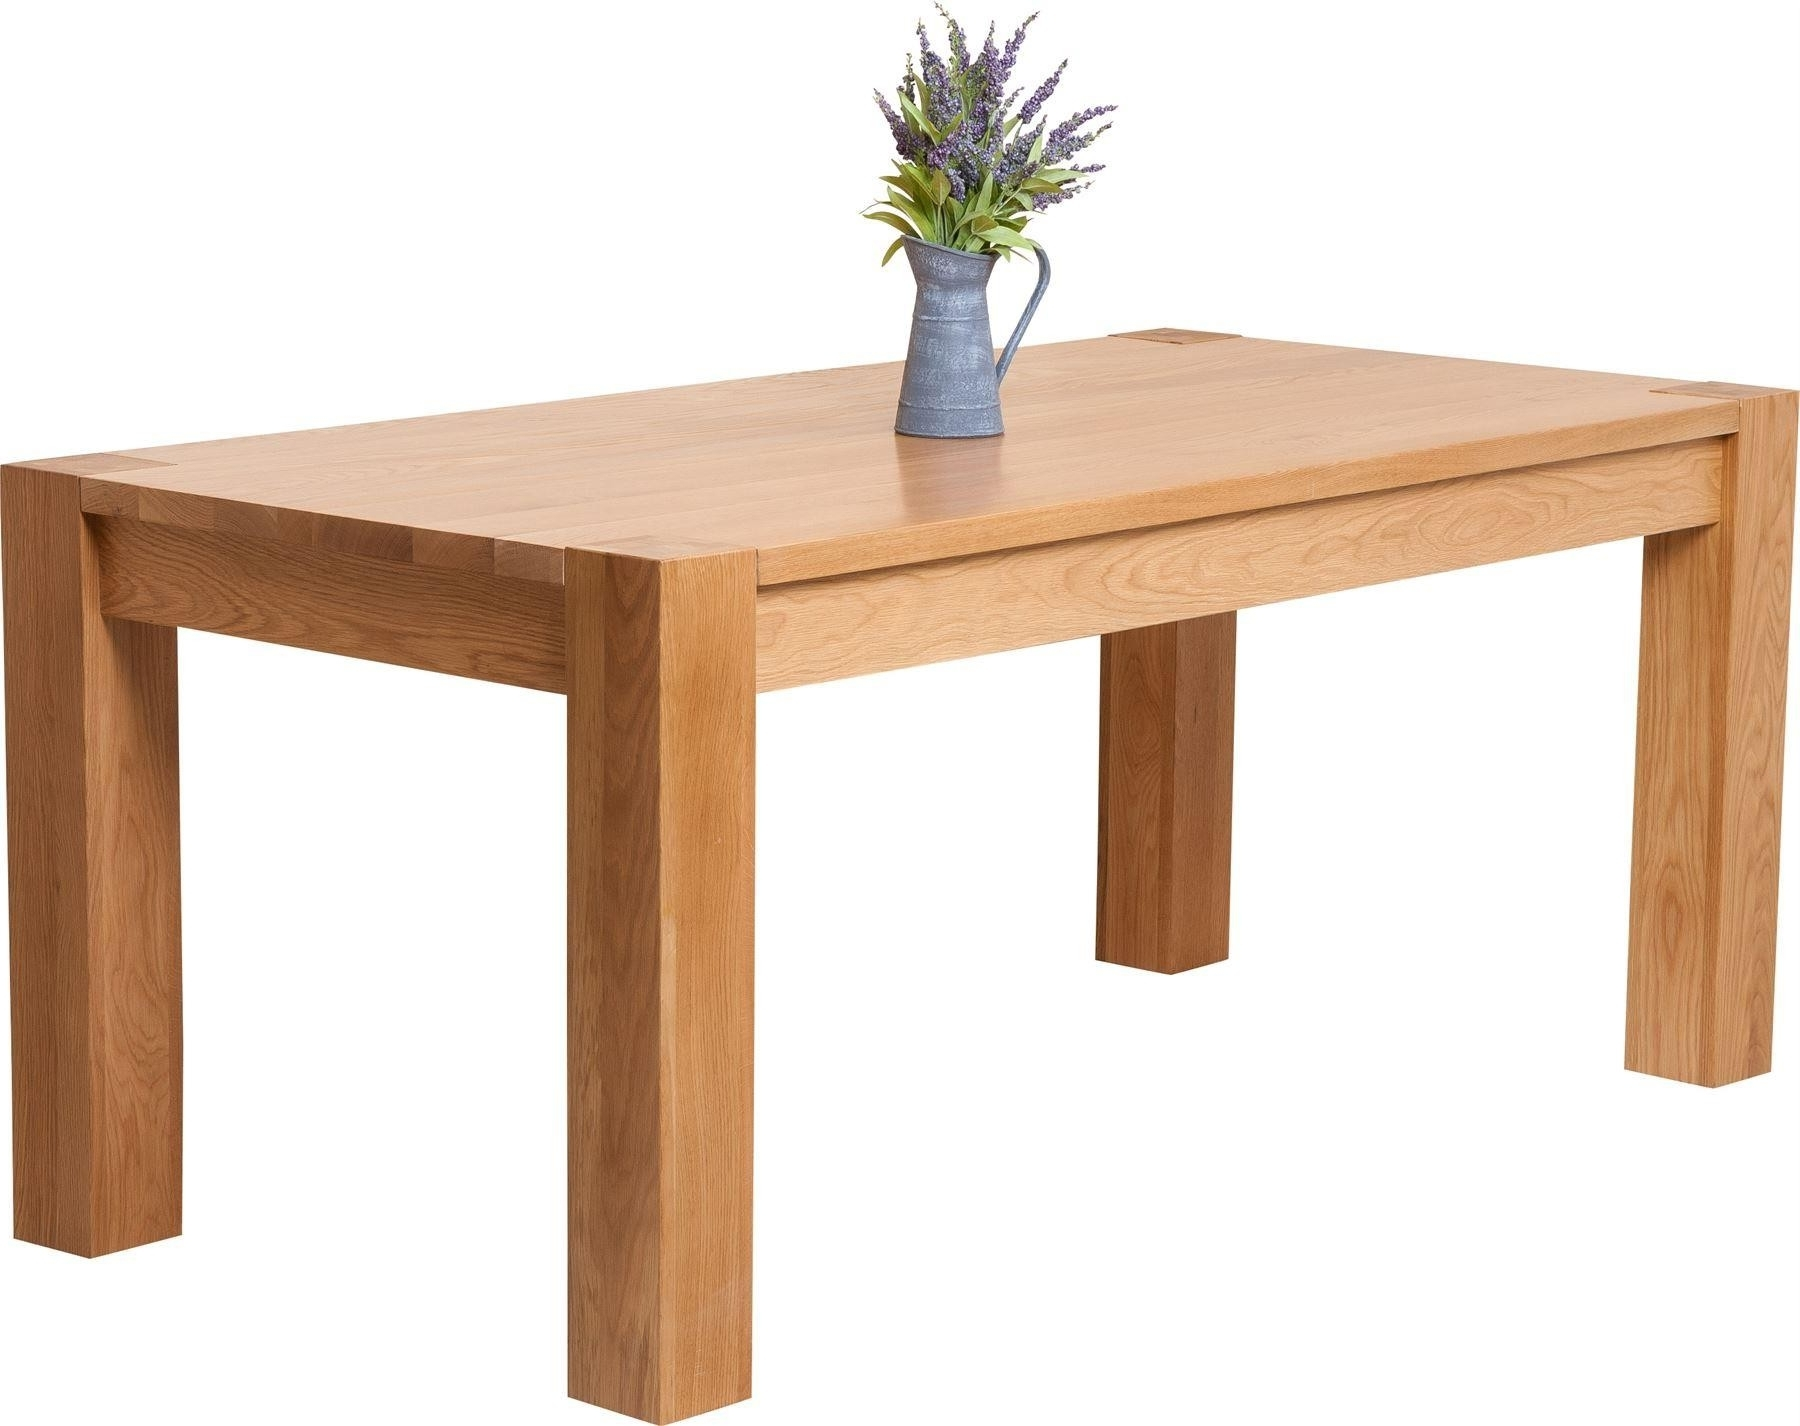 180Cm Dining Tables In Current Kuba 180Cm Solid Oak Dining Table (View 13 of 25)